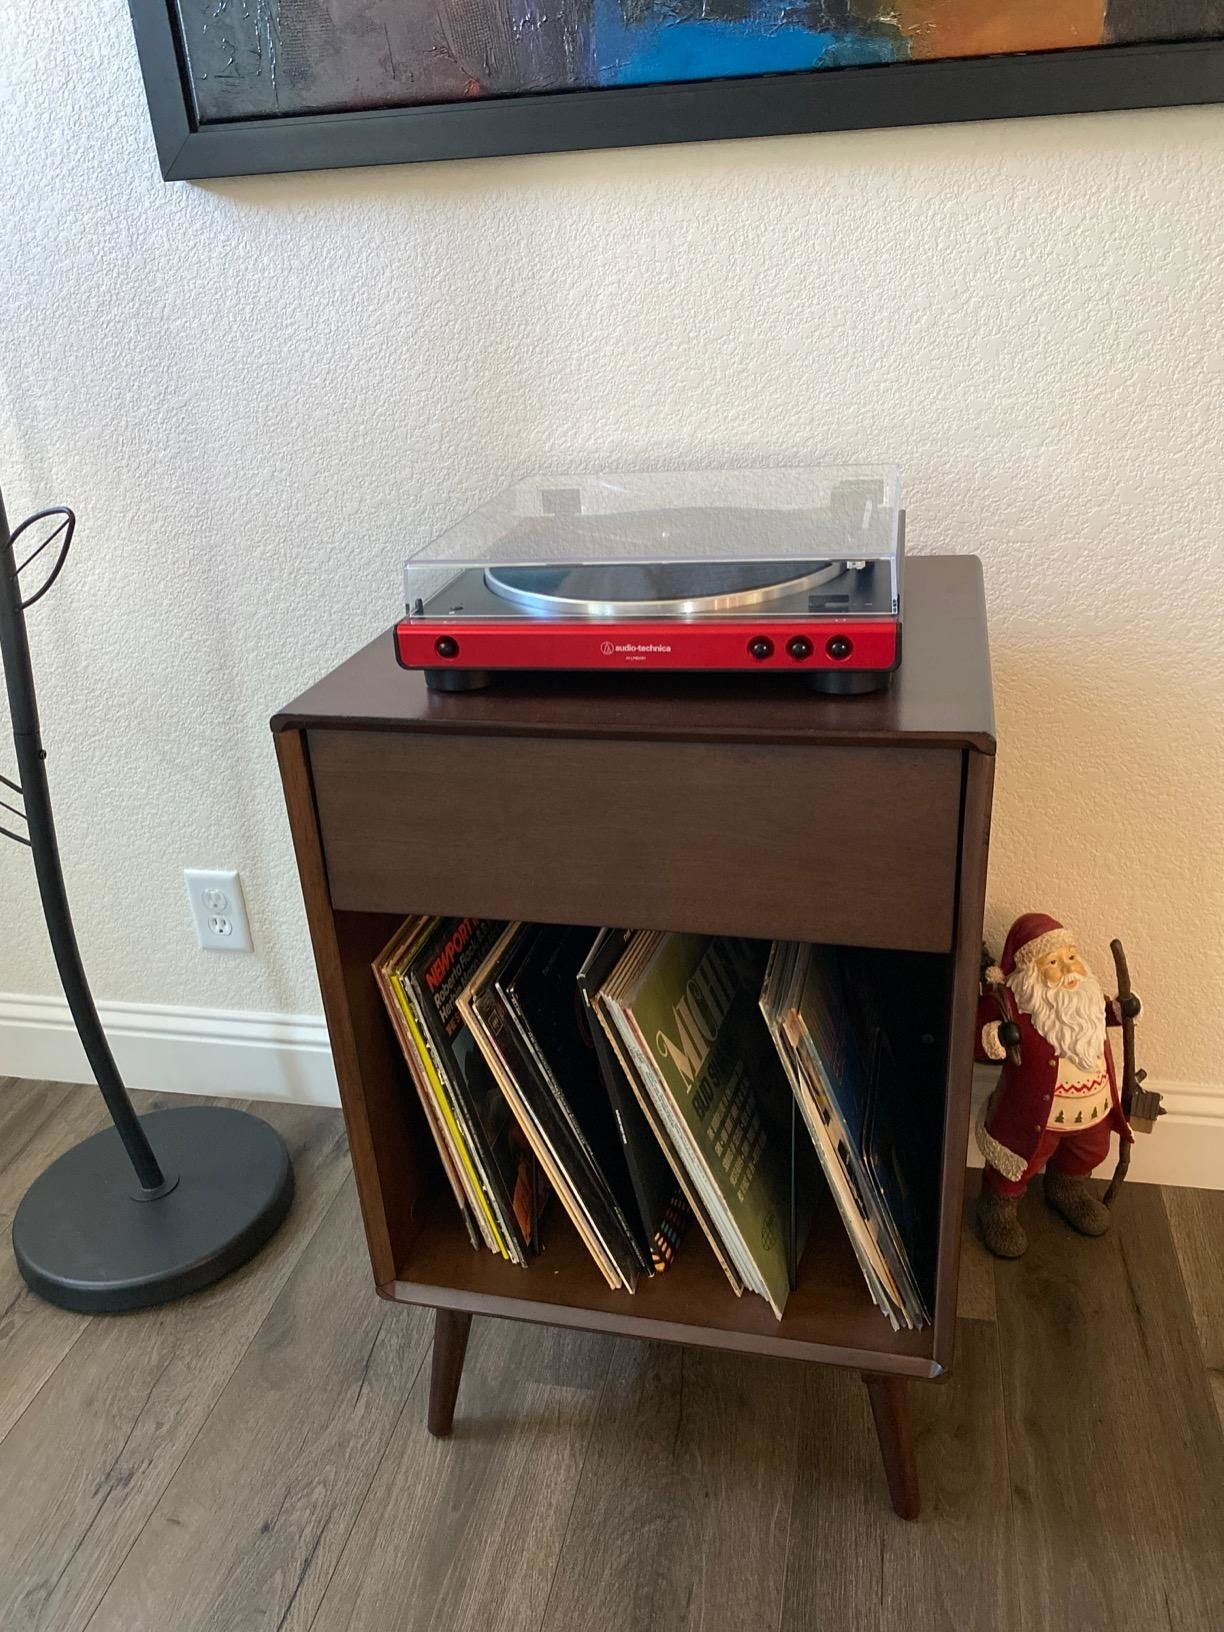 reviewer image of the black and red Audio-Technica record player on a small wooden table with record storage